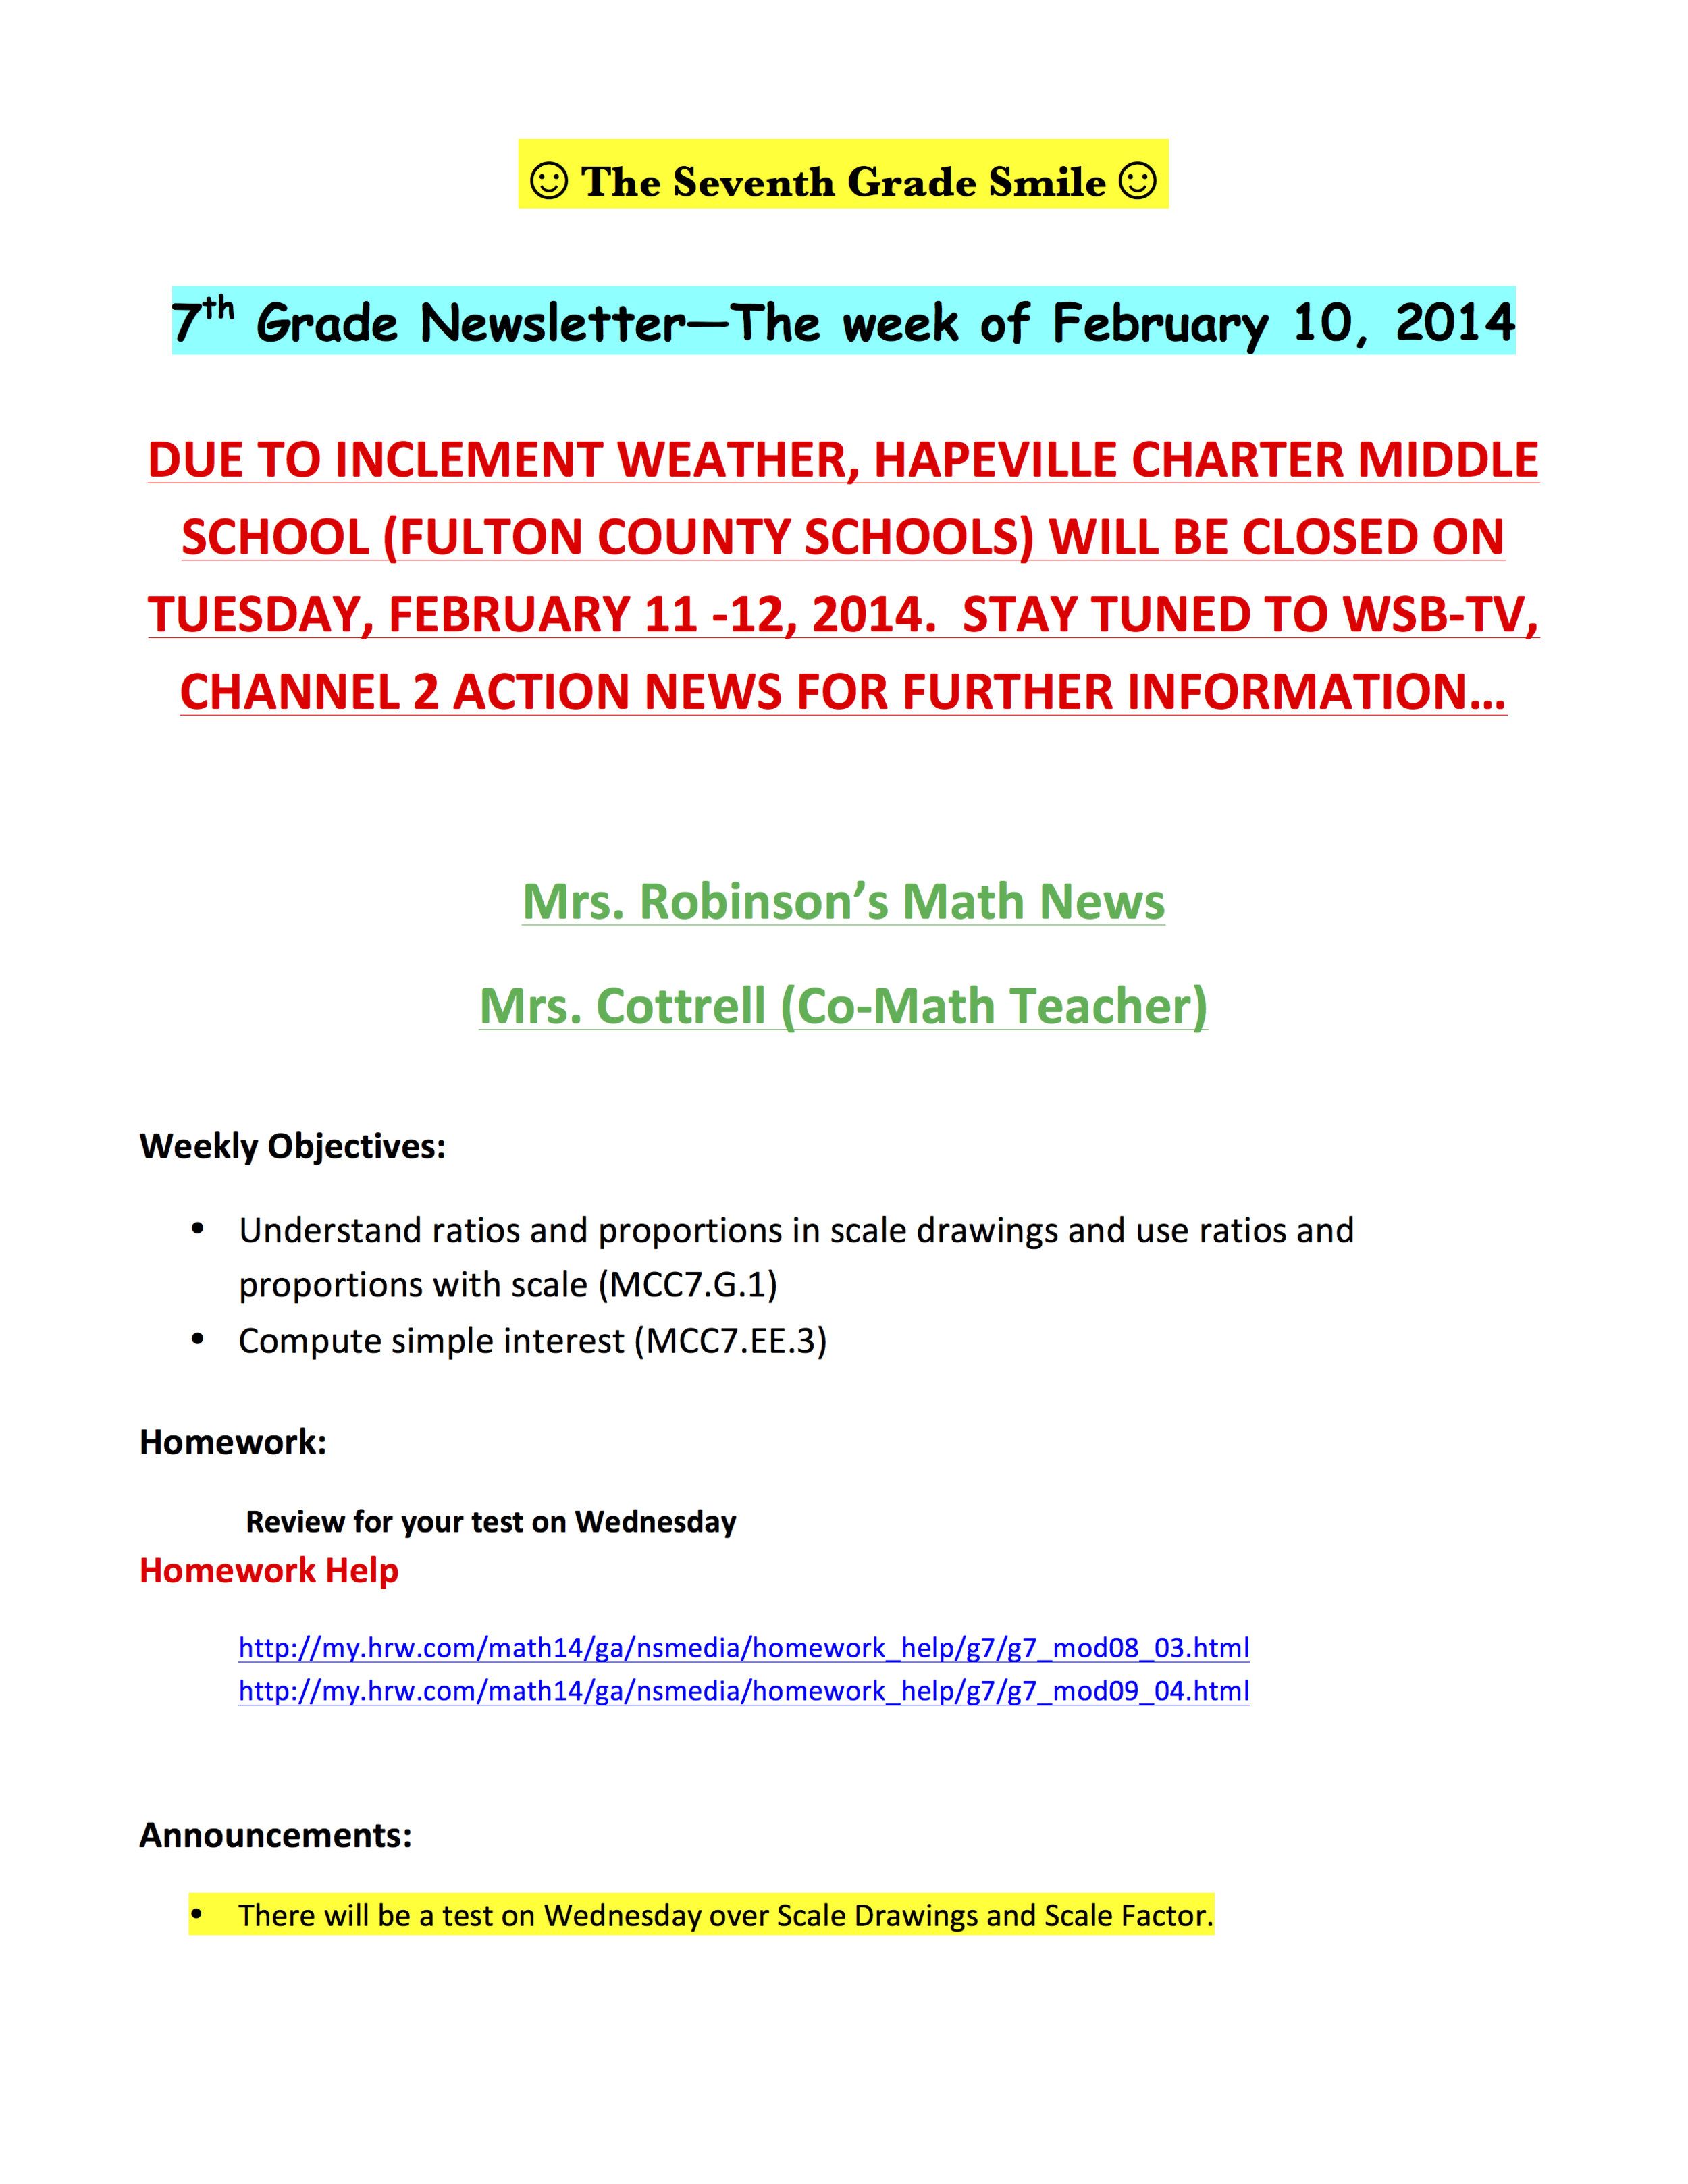 7th grade Newsletter Feb 10A.png